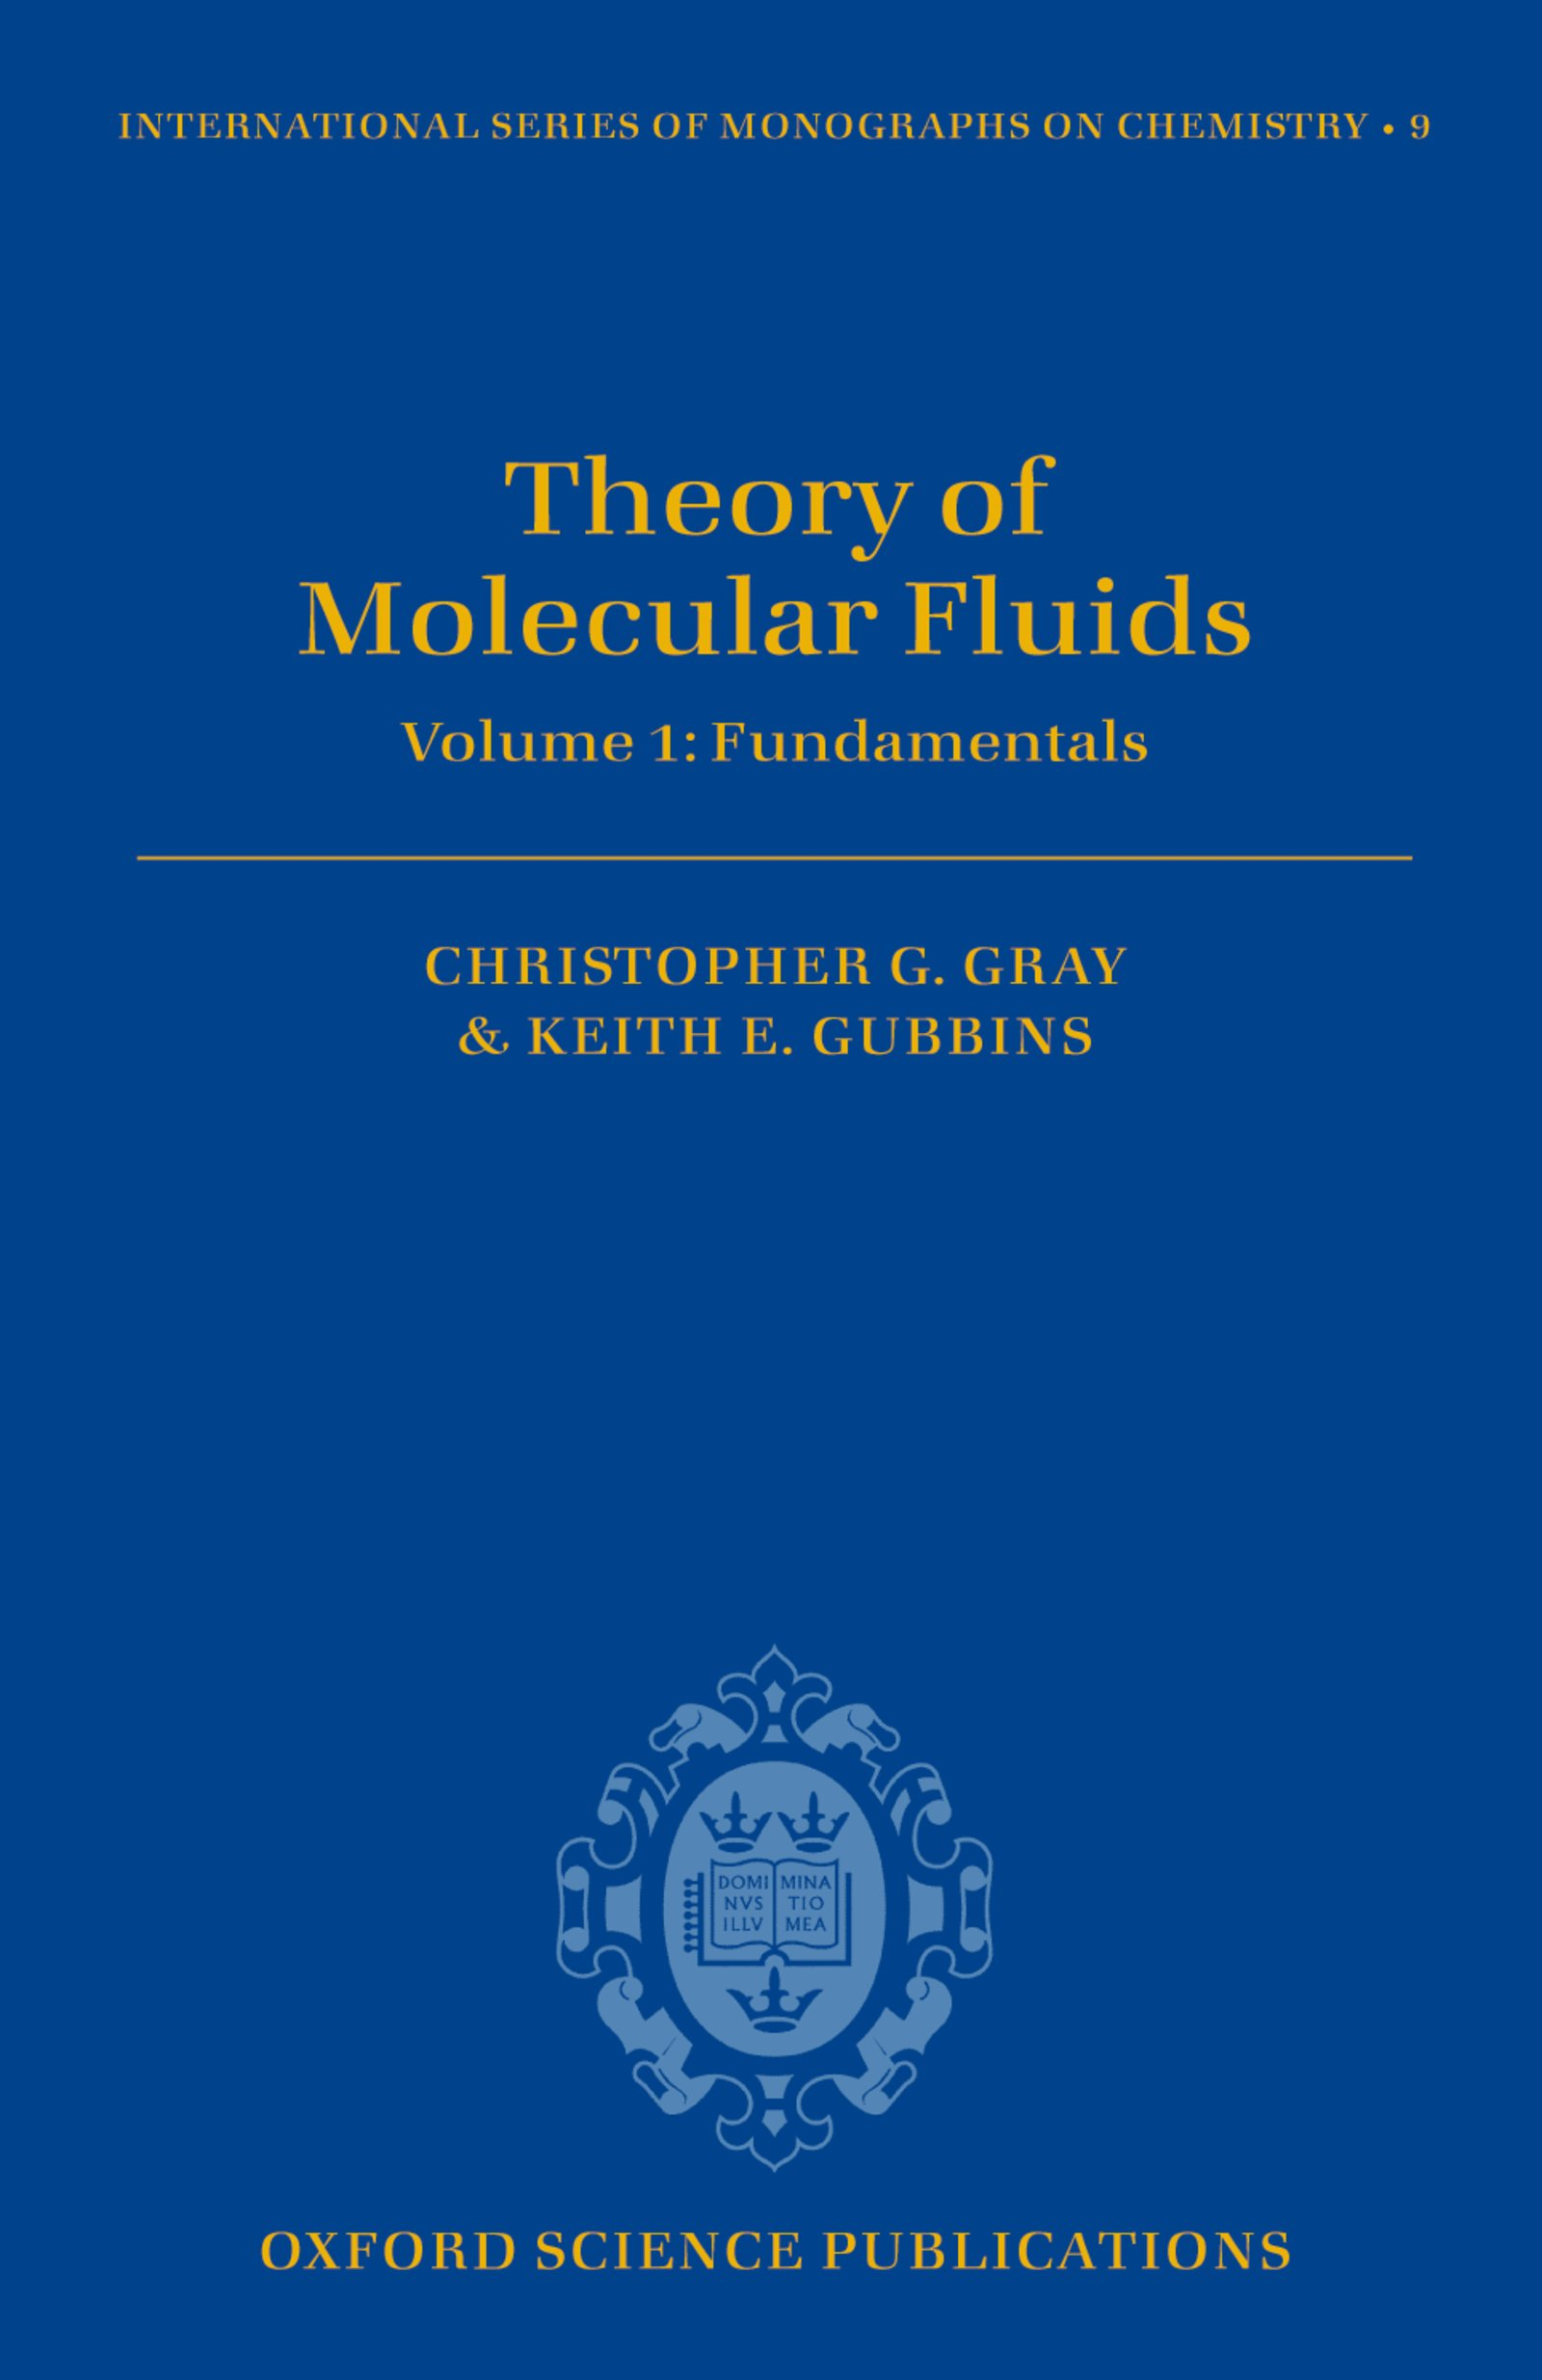 Theory of Molecular FluidsI: Fundamentals